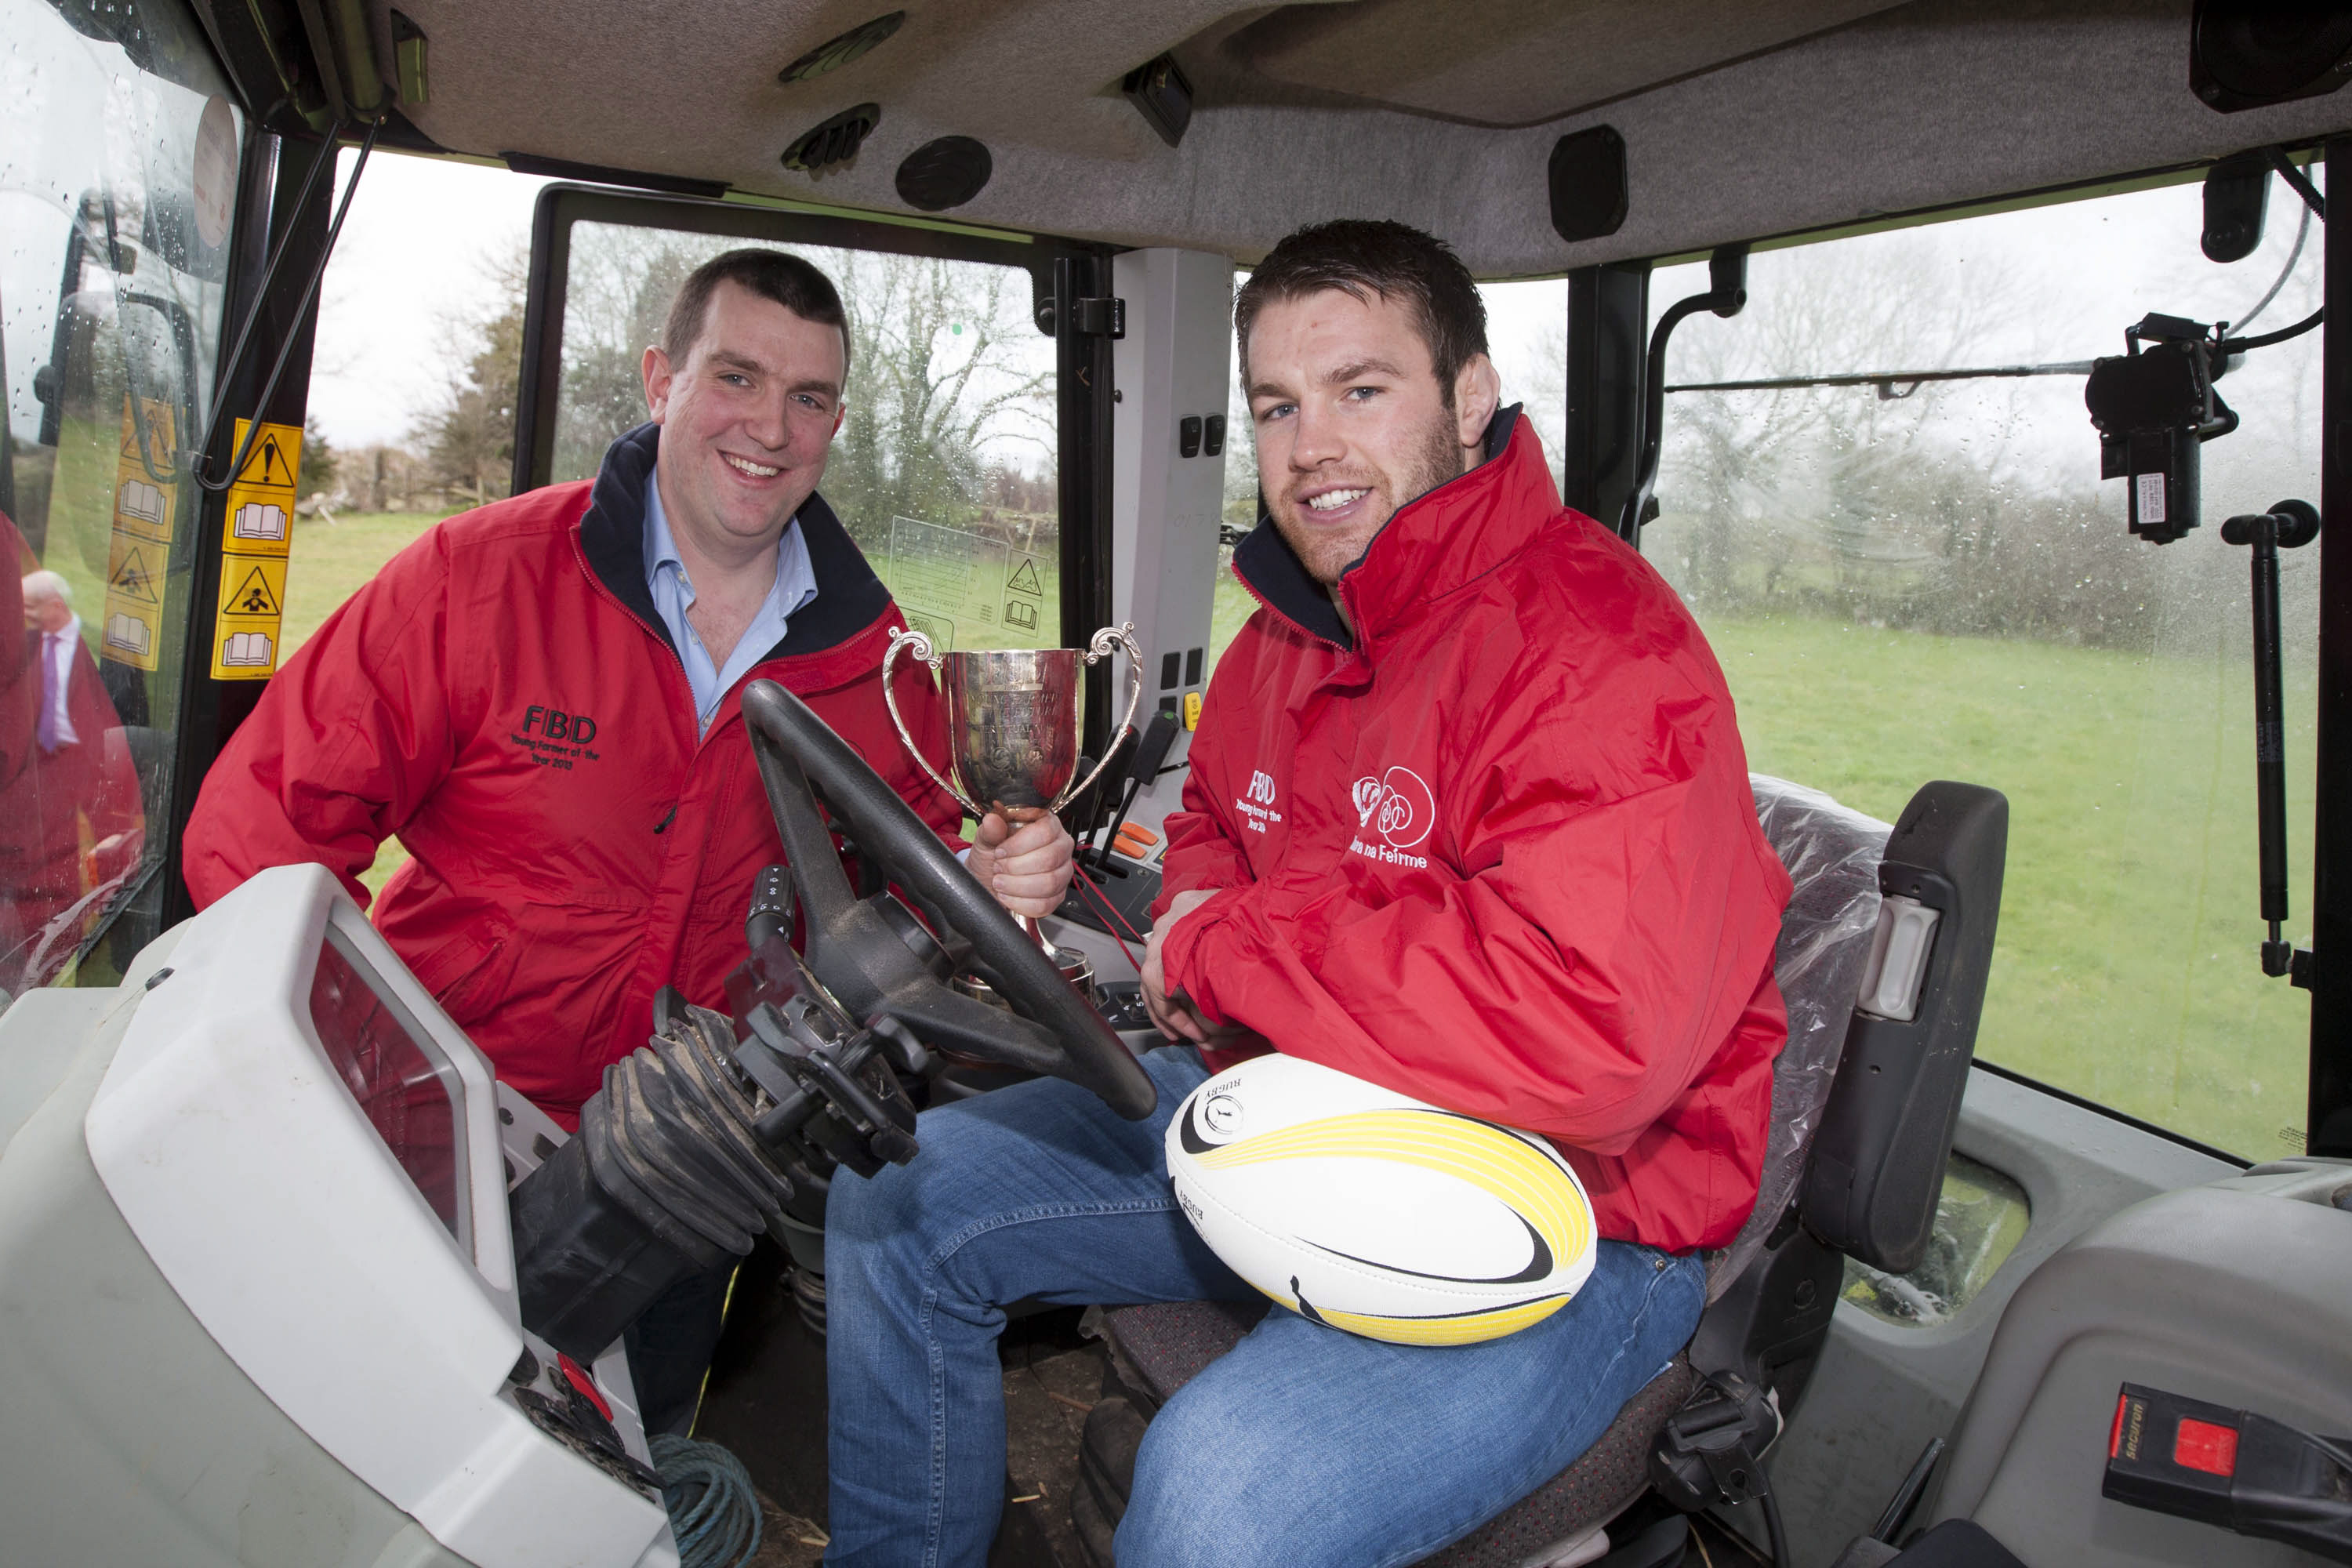 John Buckley, FBD Young Farmer of the Year 2013 with Sean O'Brien, launching the 16th FBD Young Farmer of the Year.